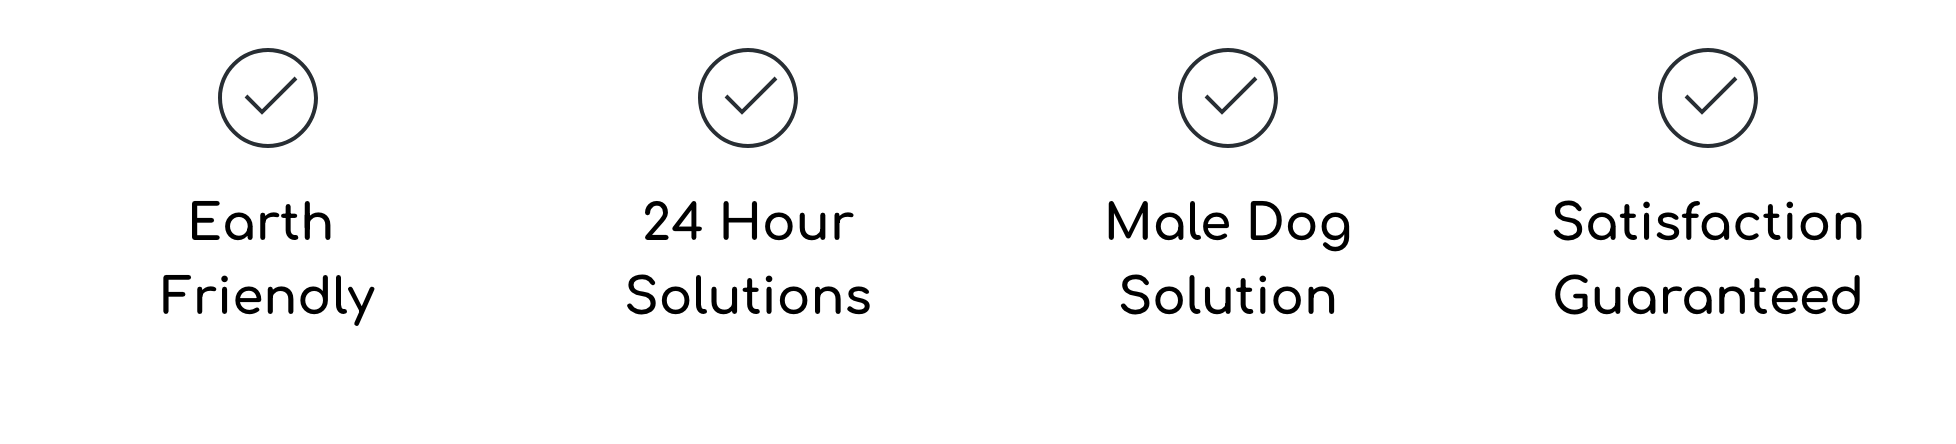 wizsmart product feature callouts